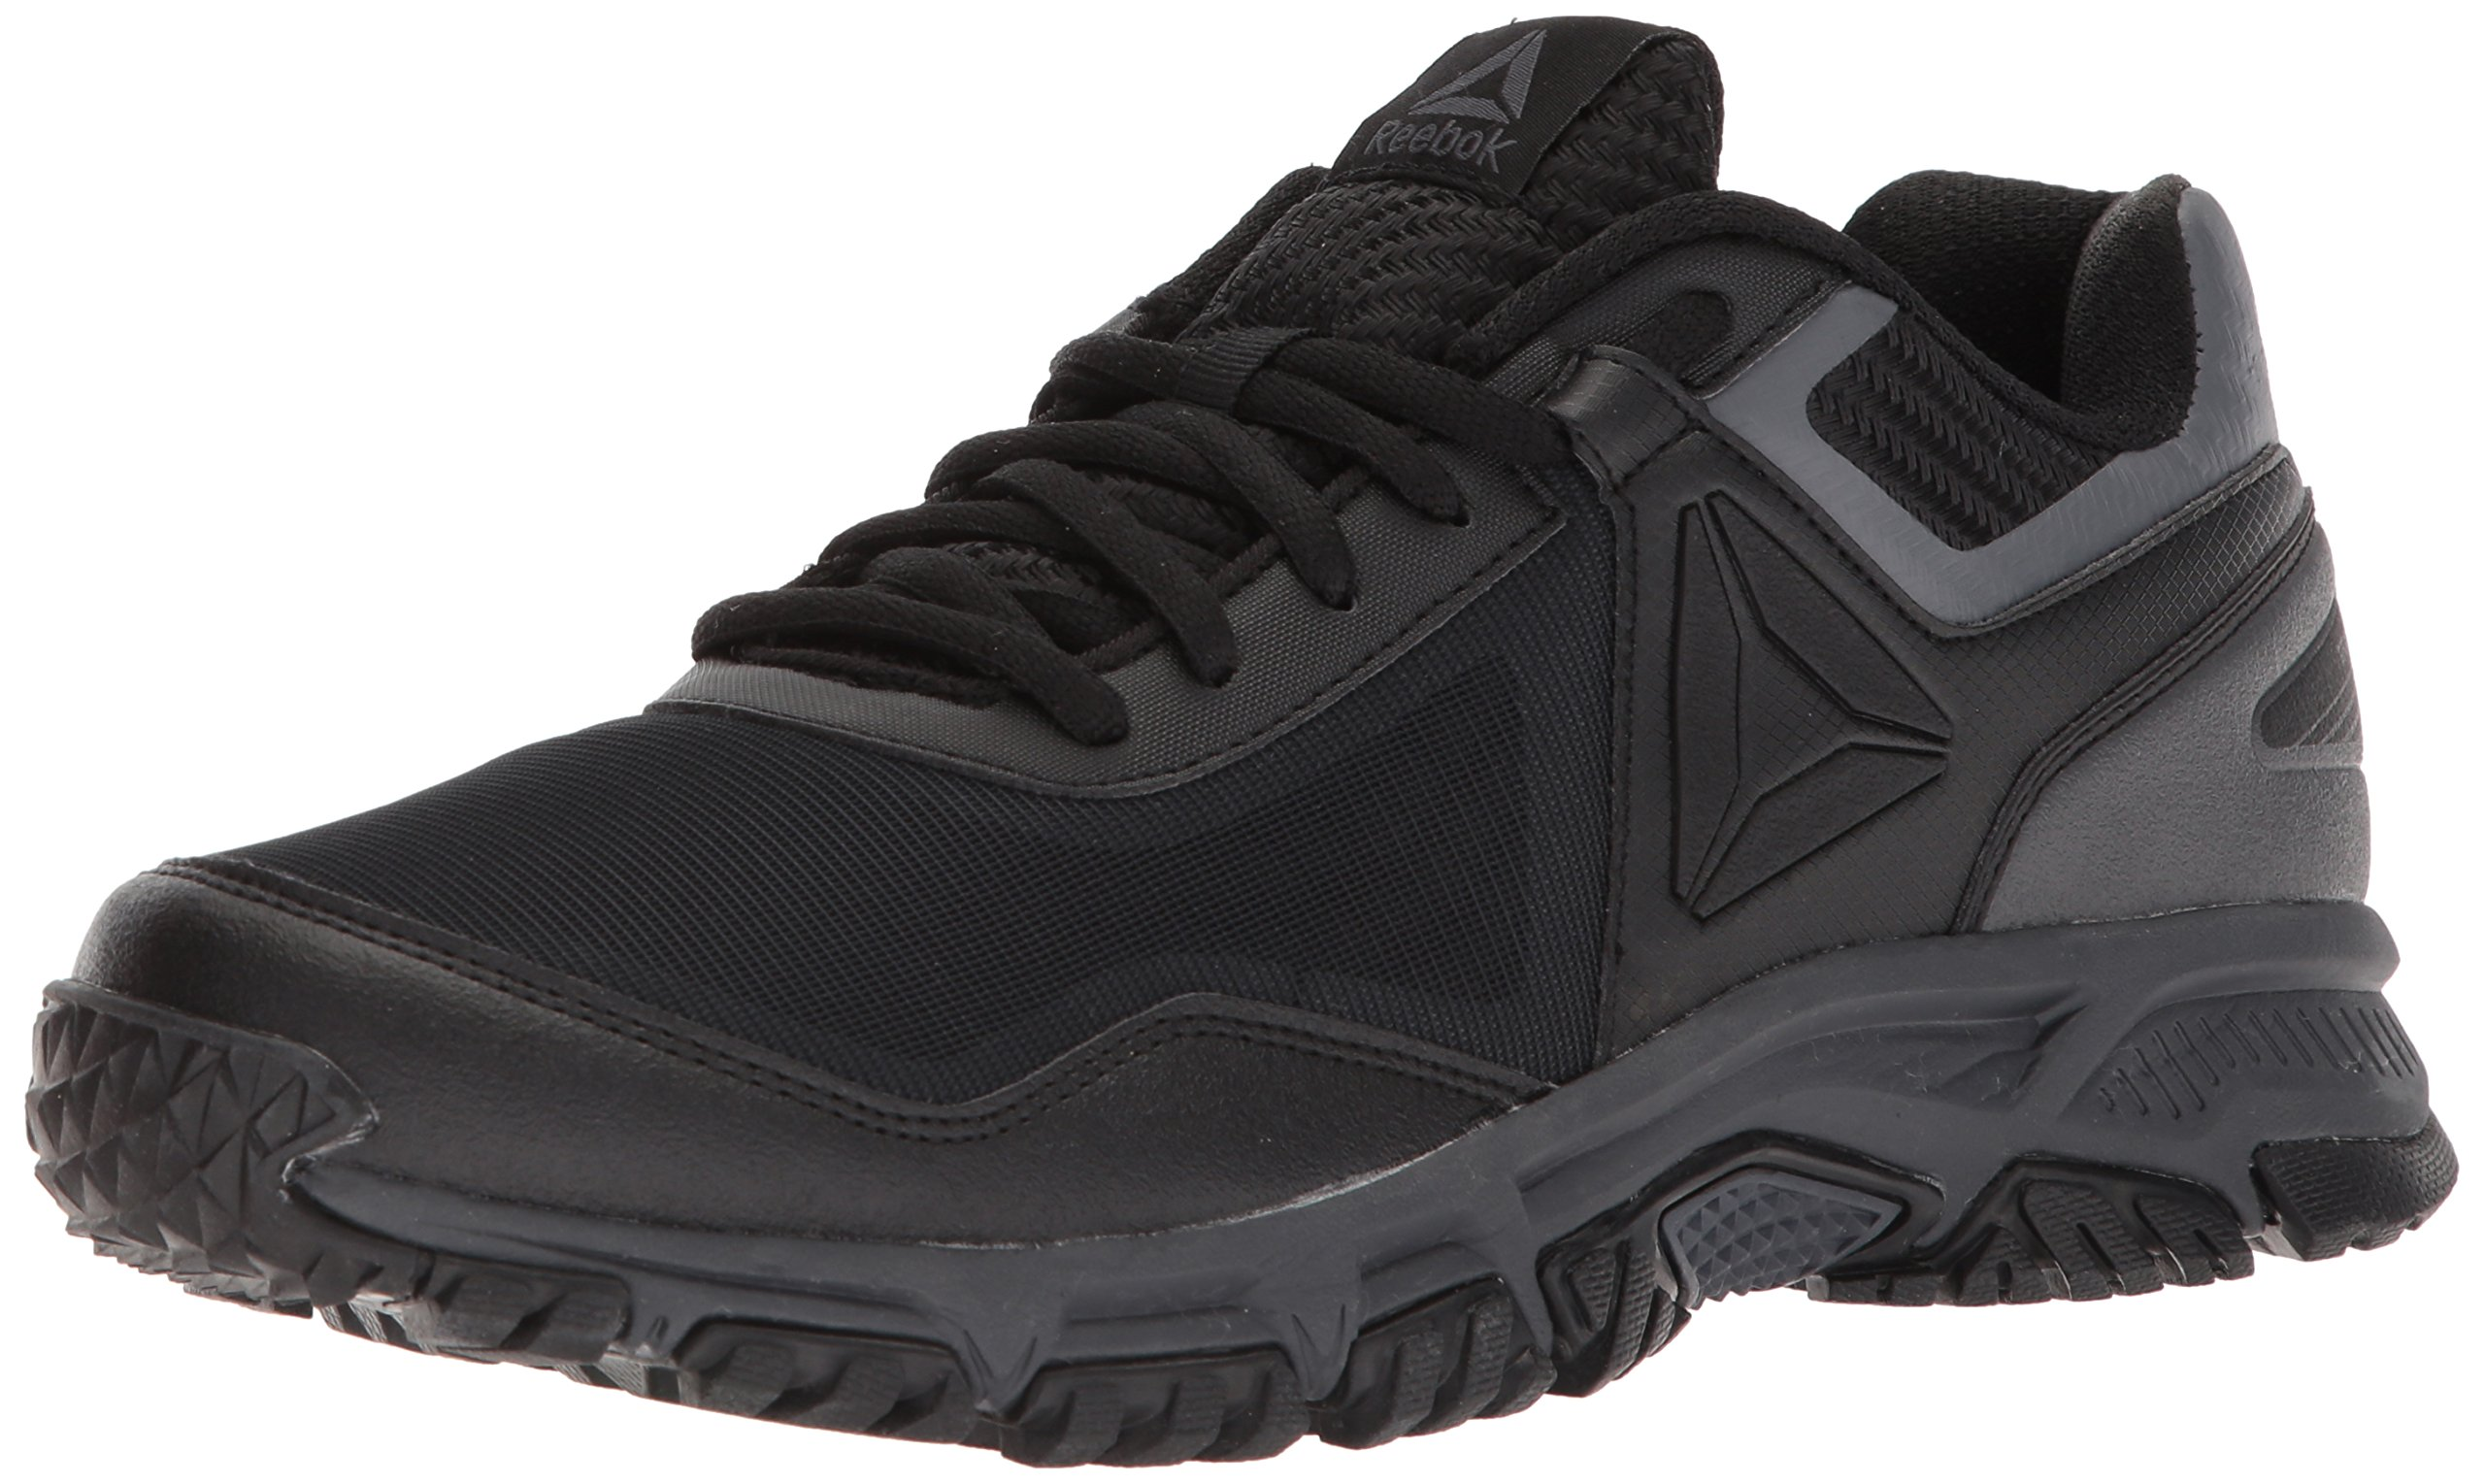 Reebok Men's Ridgerider Trail 3.0 Cross Trainer, Black/Ash Grey, 9 M US by Reebok